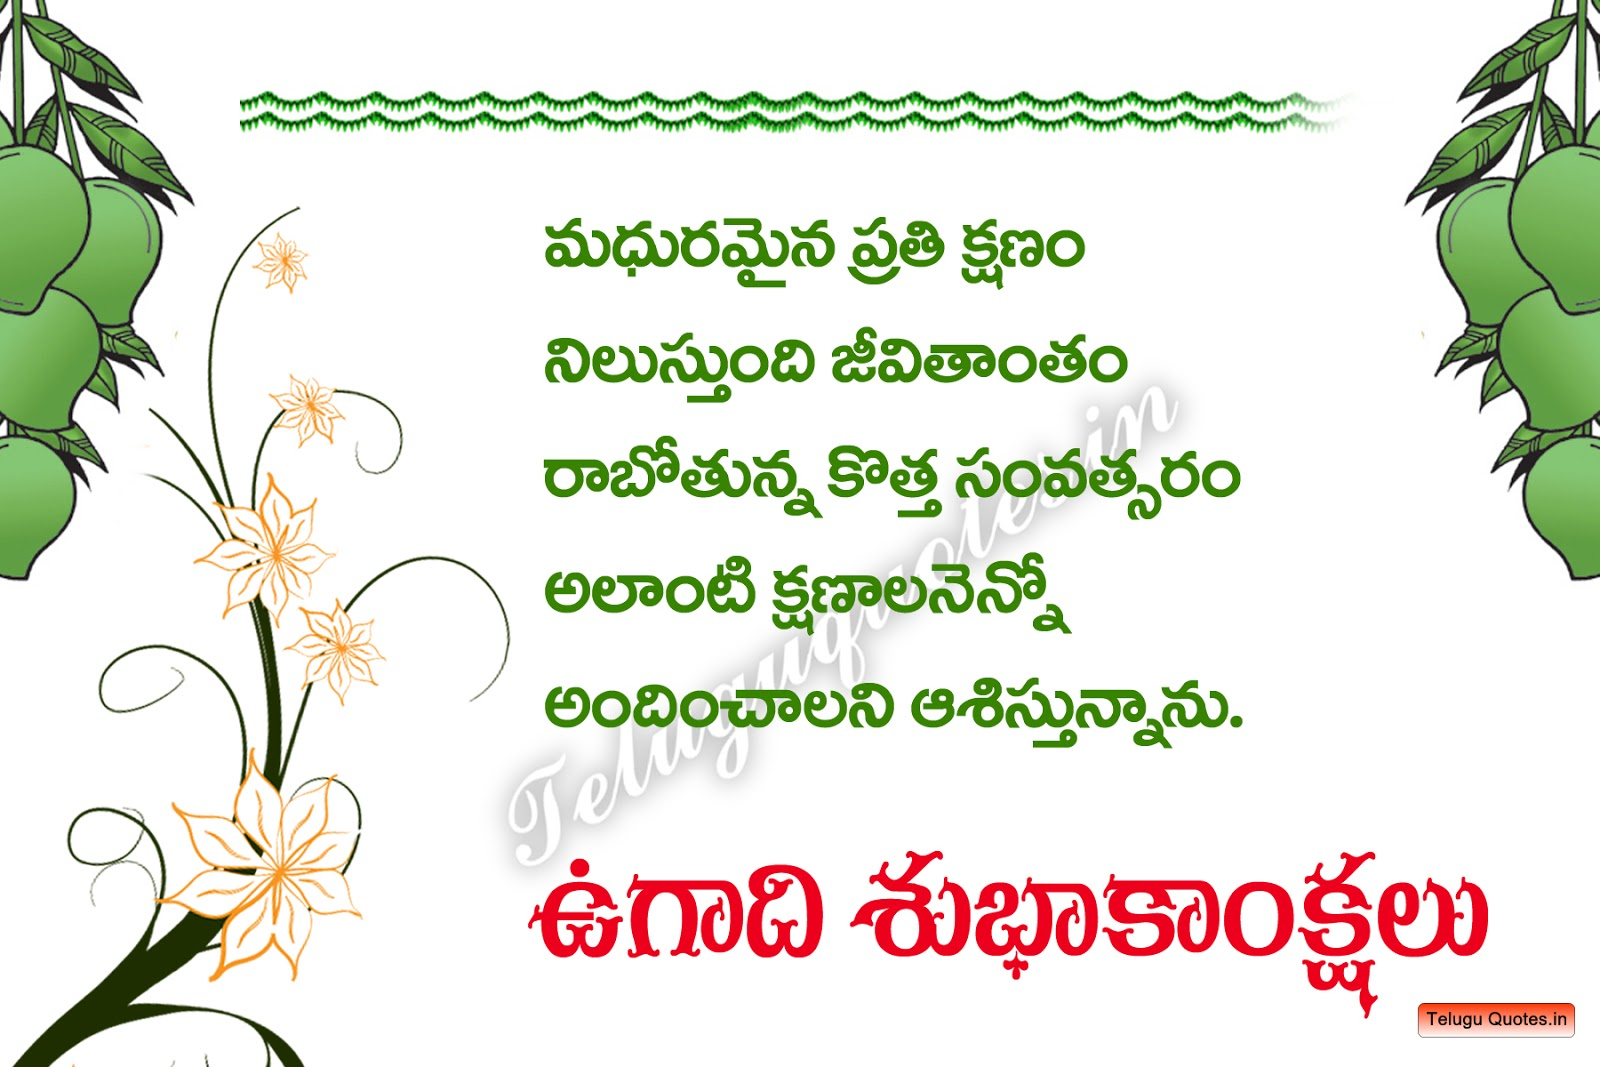 2017 ugadi wishes telugu quotes ugadi greetings in telugu latest telugu quotes nice telugu quotes ugadi greetings 2017 ugadi wallapapers m4hsunfo